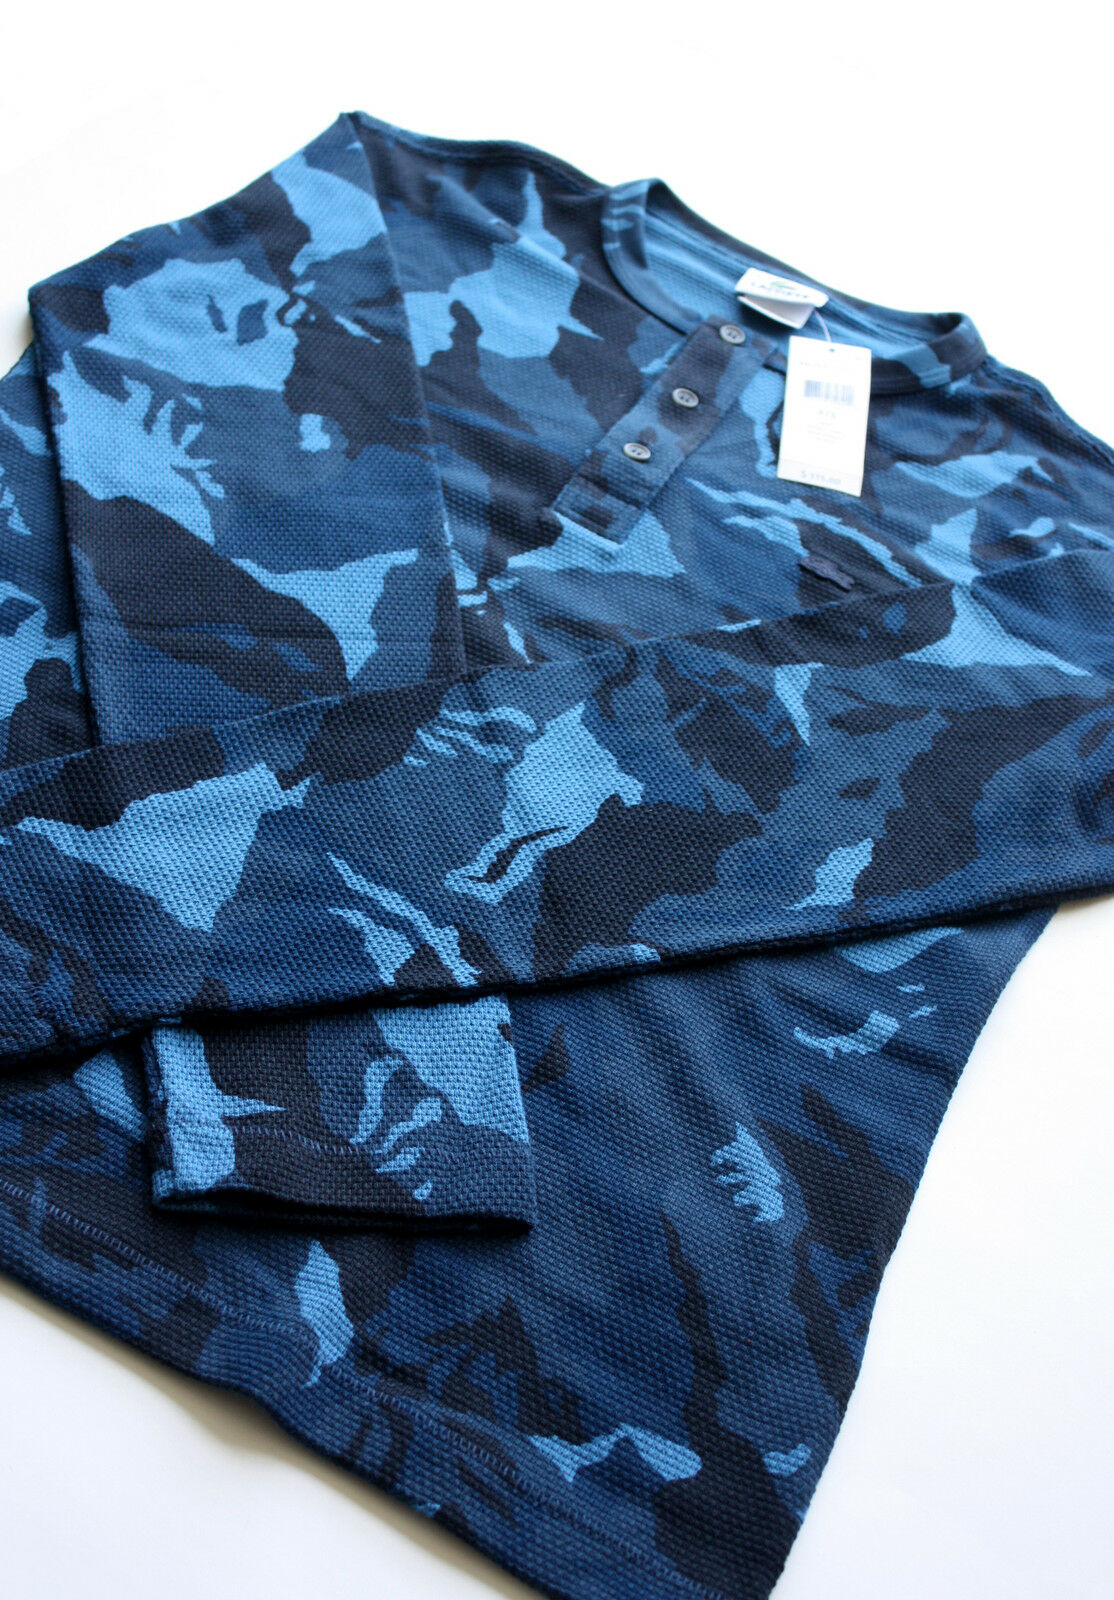 LACOSTE bluee Camo Button-Up Shirt NEW tag Men's size 4 Rare polo sweater